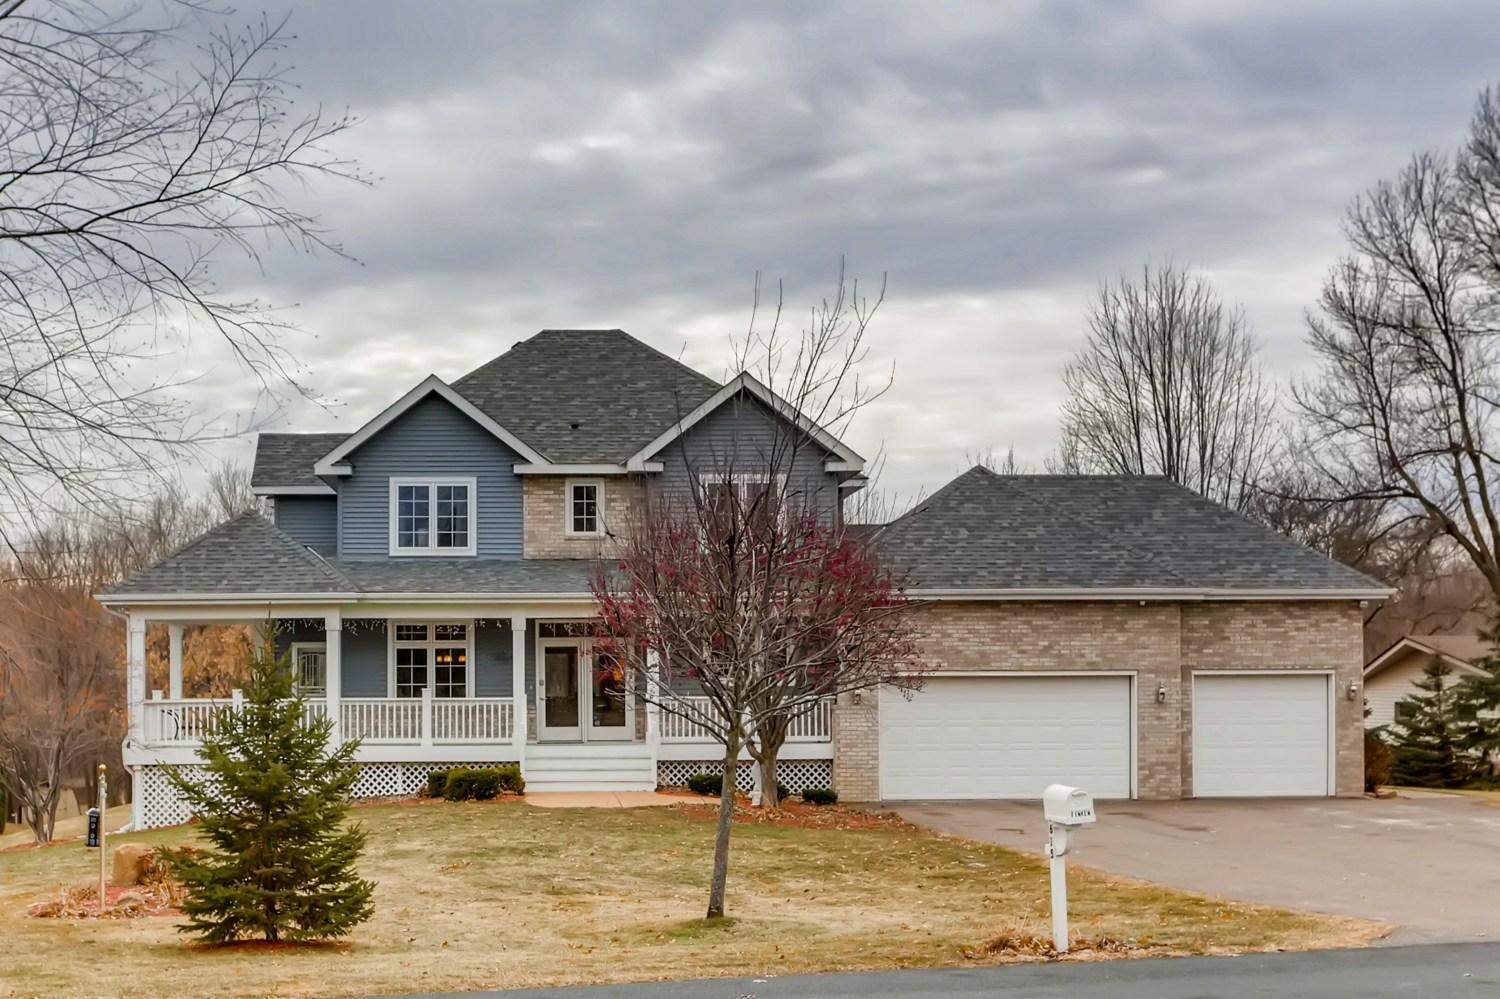 6615 71st Lane Property Photo - Greenfield, MN real estate listing